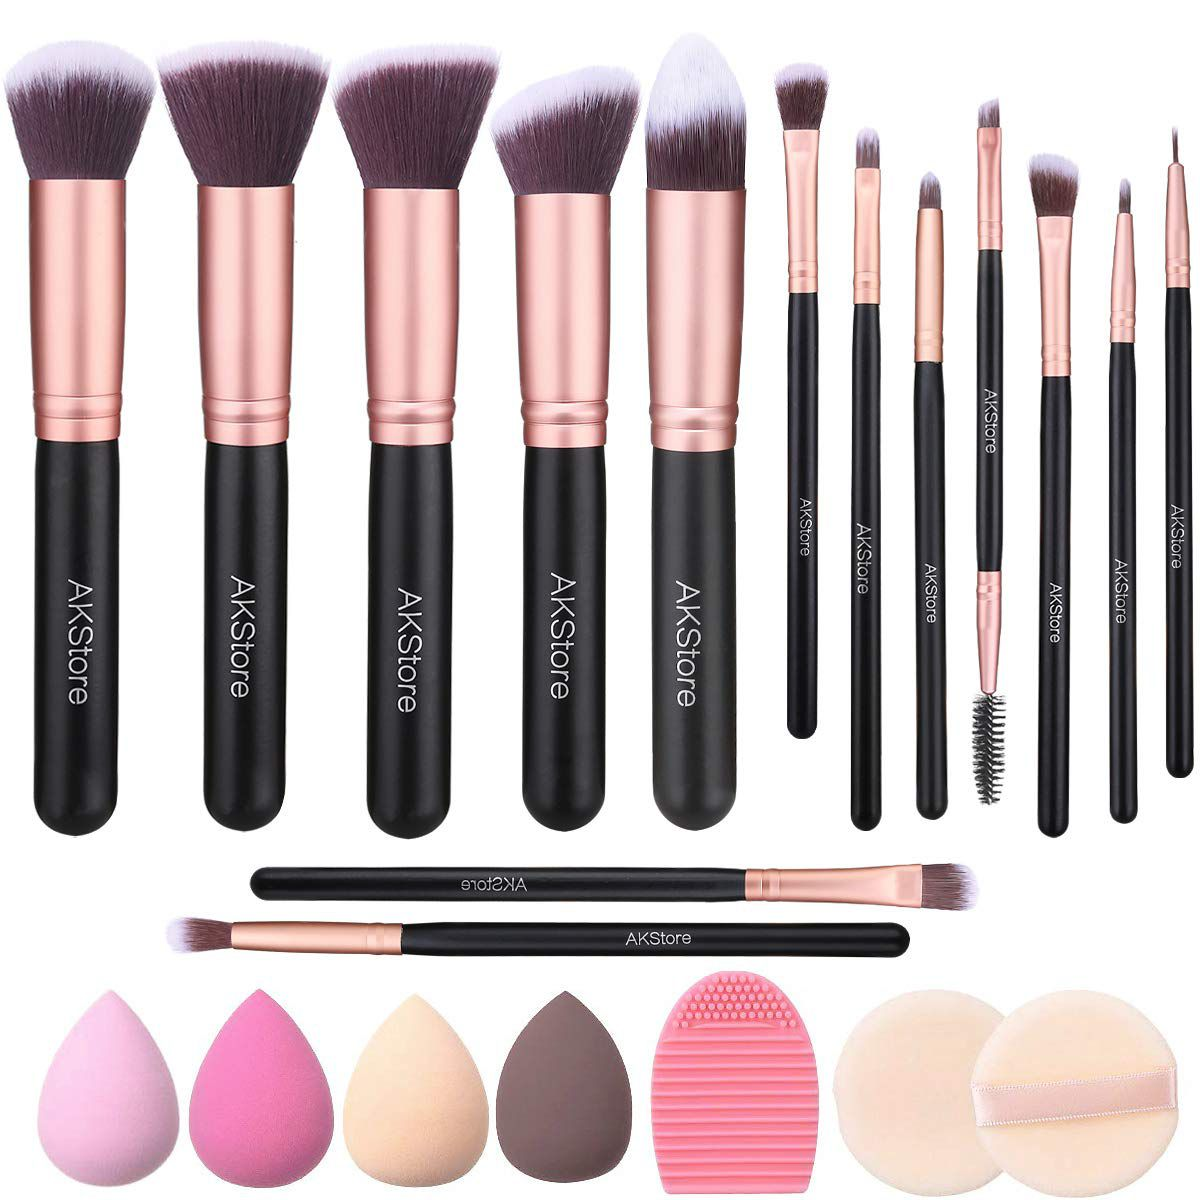 The 7 Best Cheap Makeup Brush Sets Of 2021